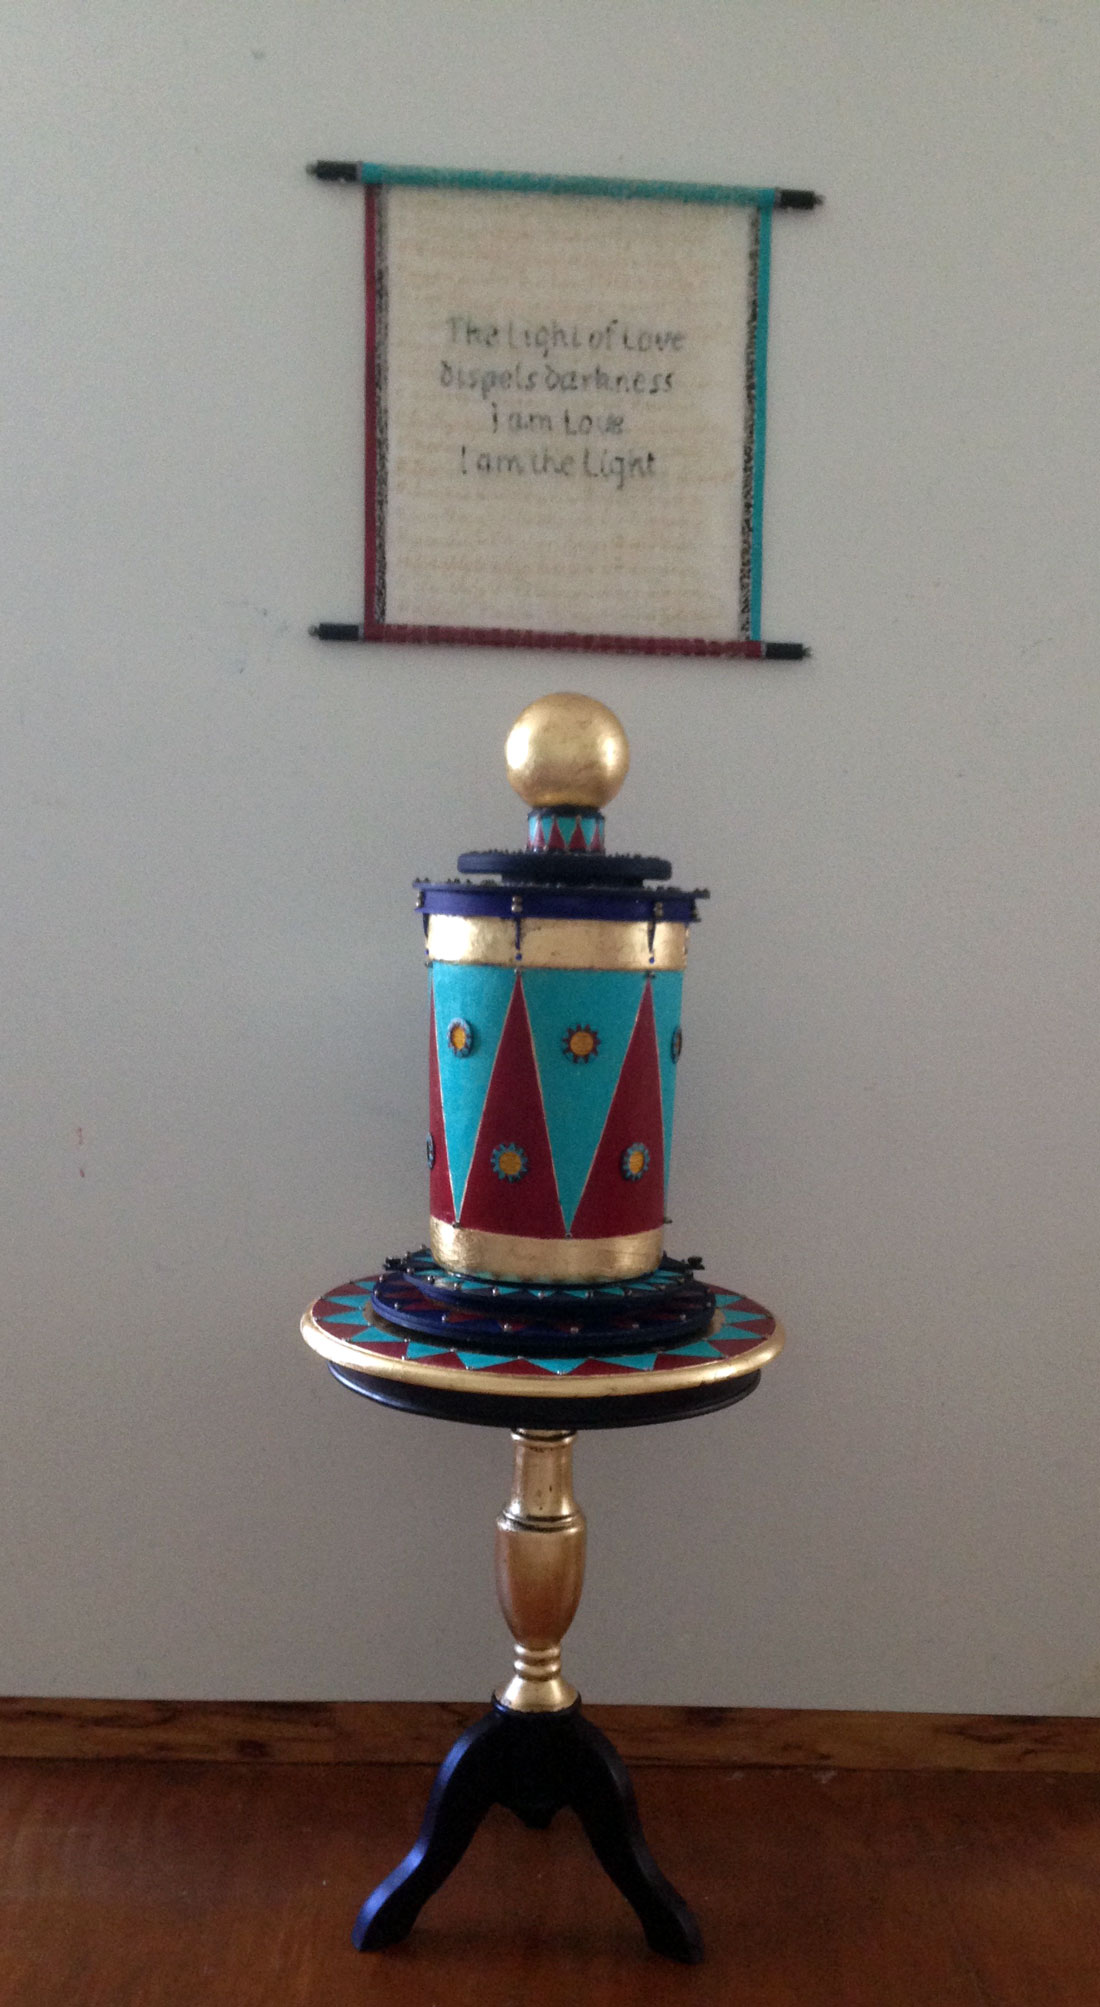 Prayer Wheel with Mantra (2017)